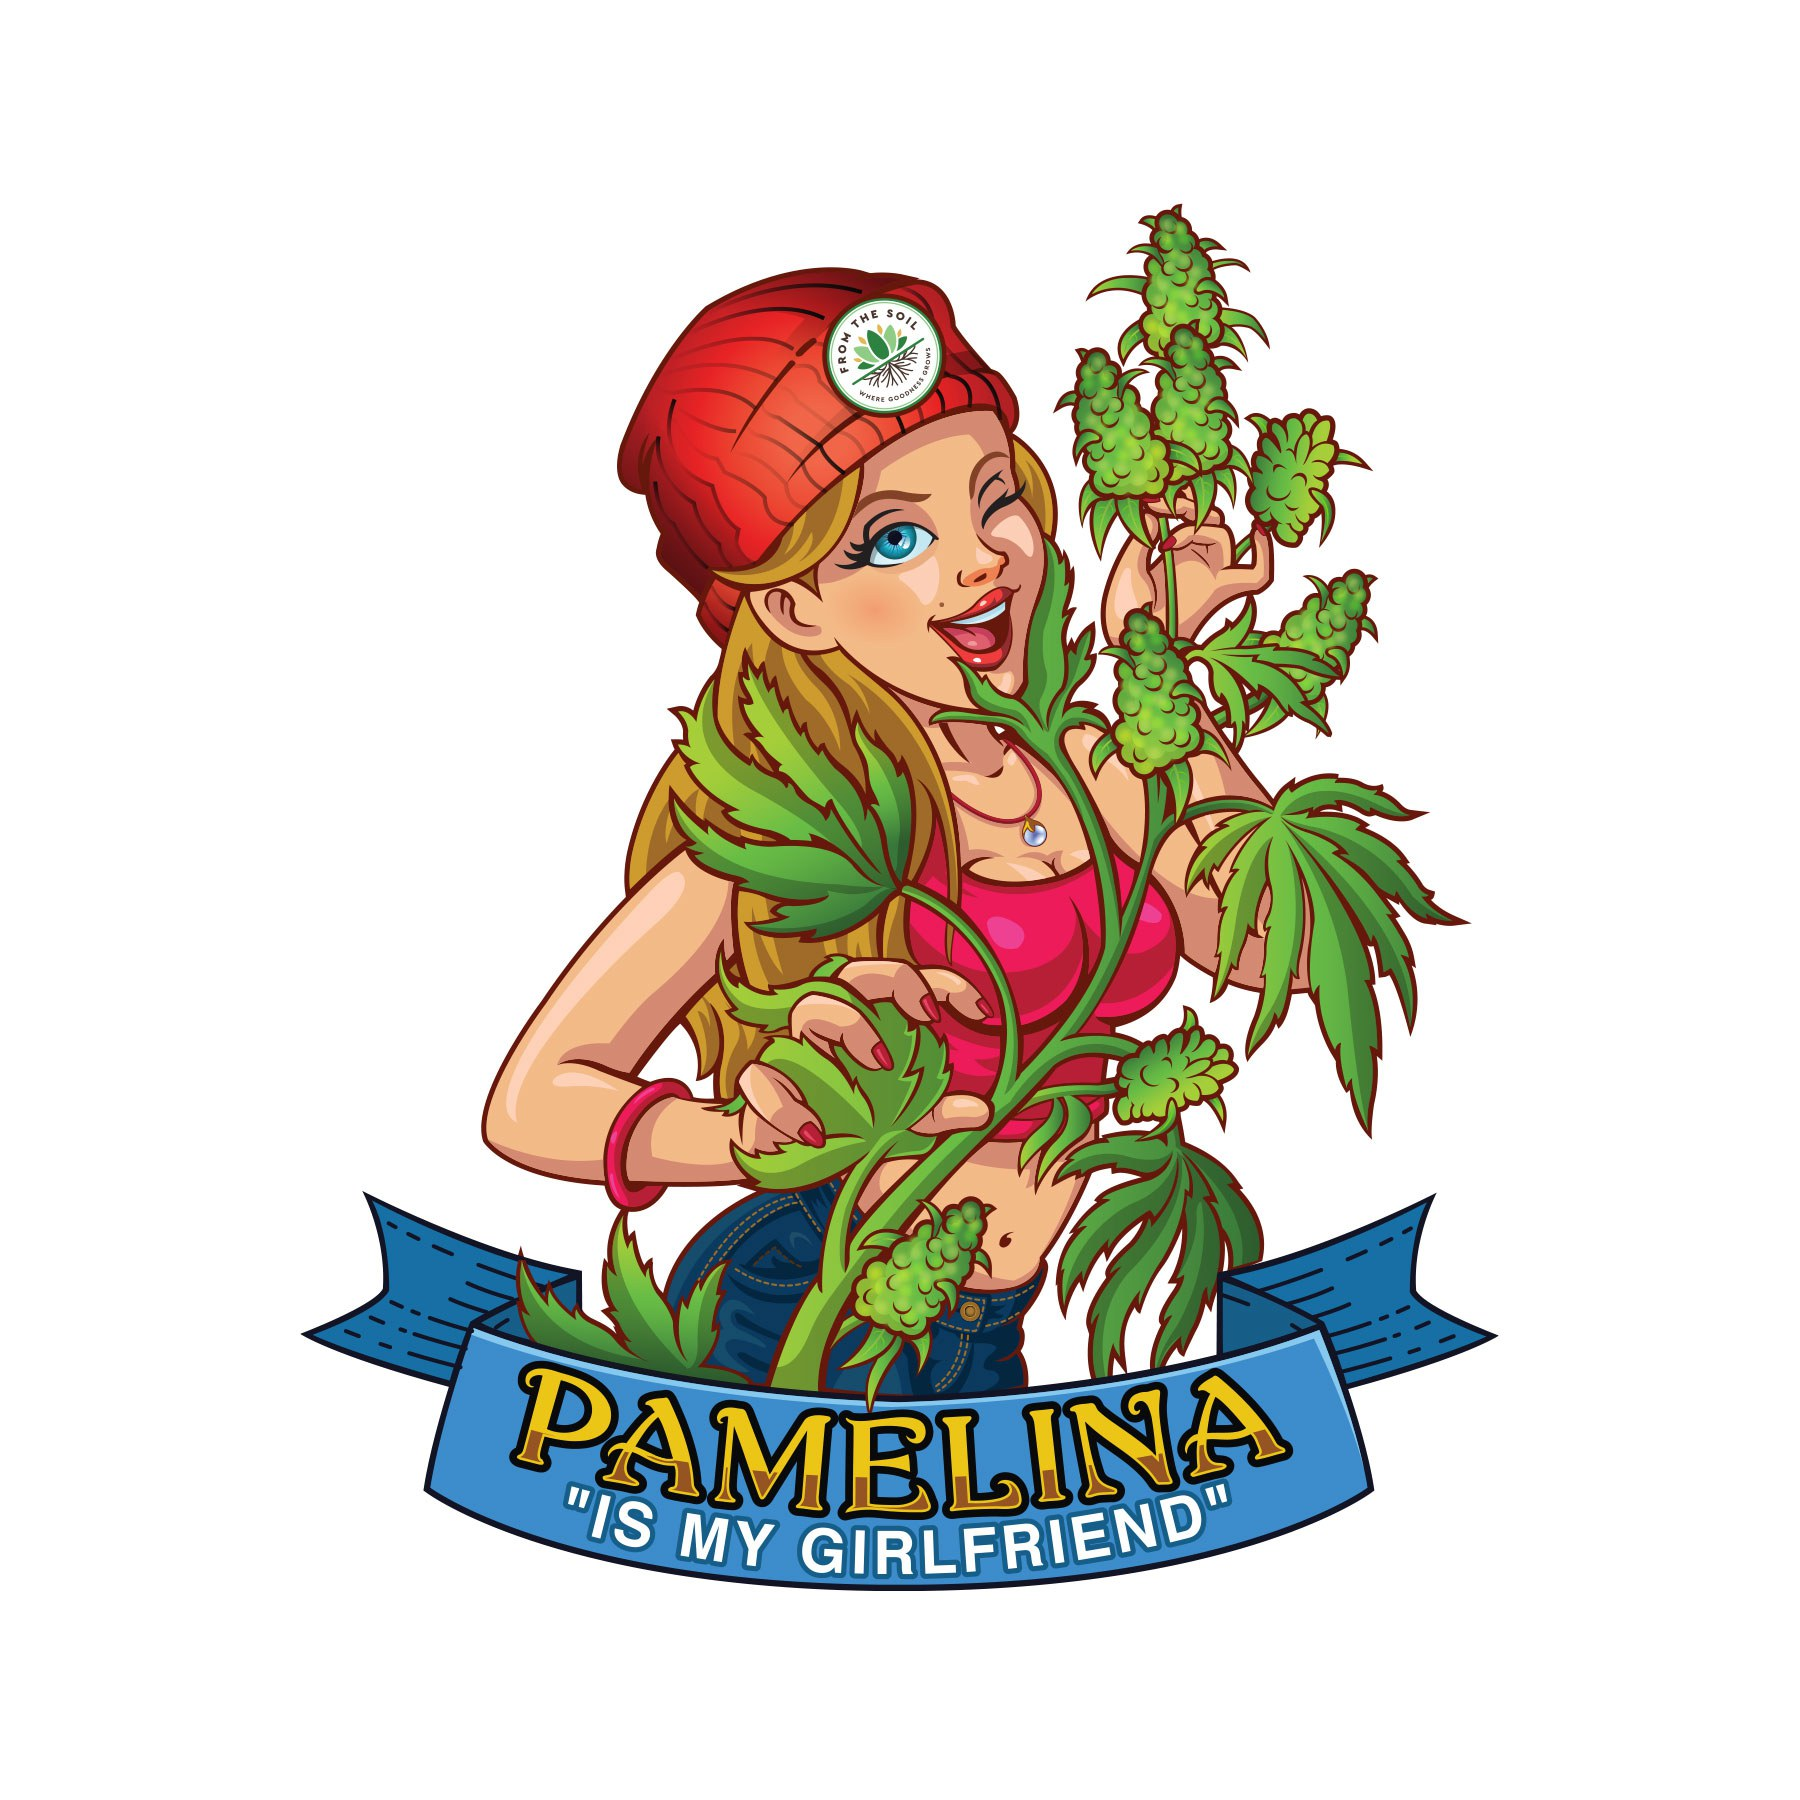 Pamelina is Our Girlfriend...